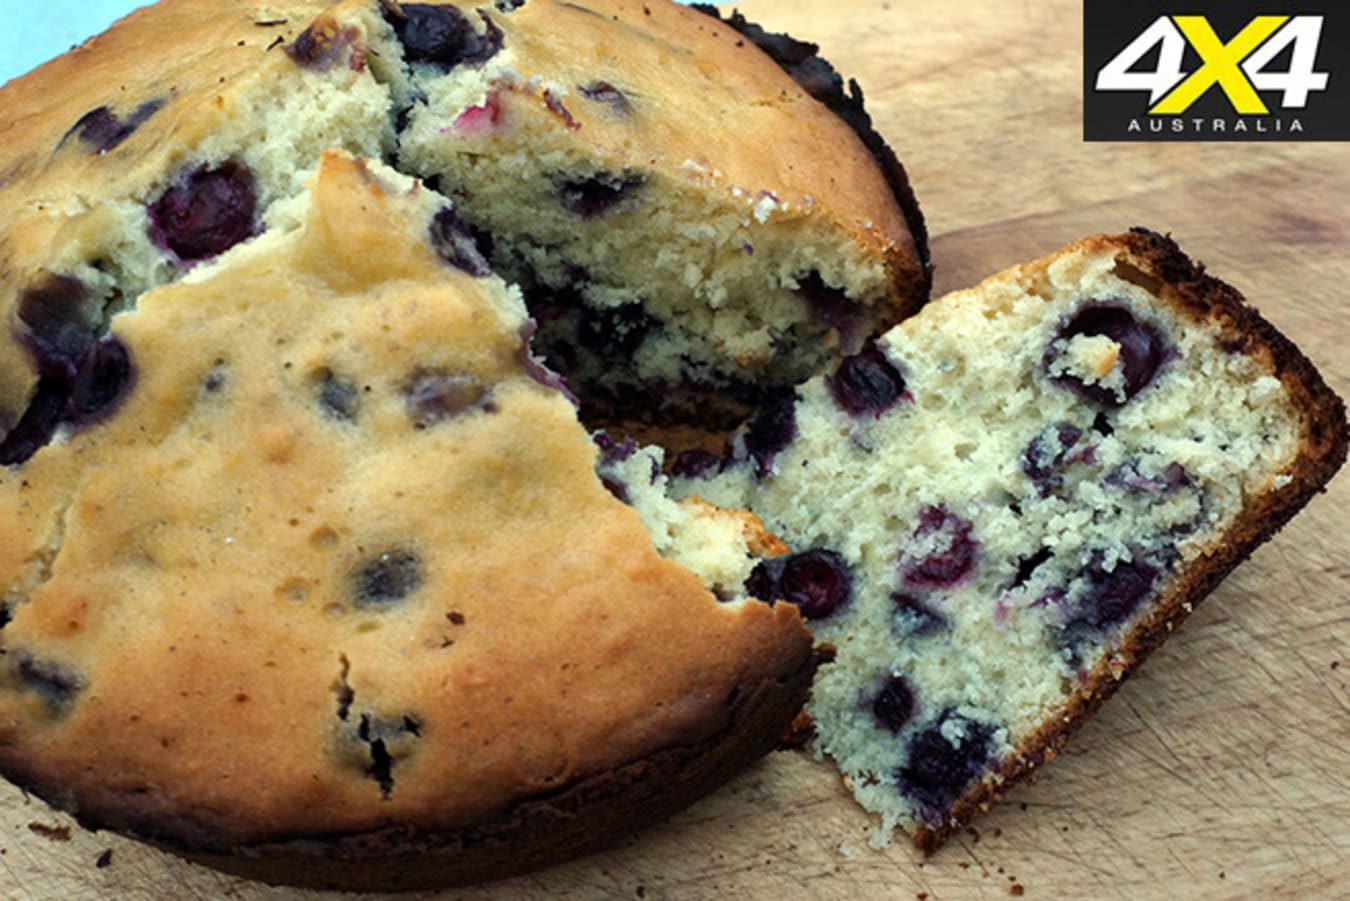 Giant Blueberry Camp Oven Muffin